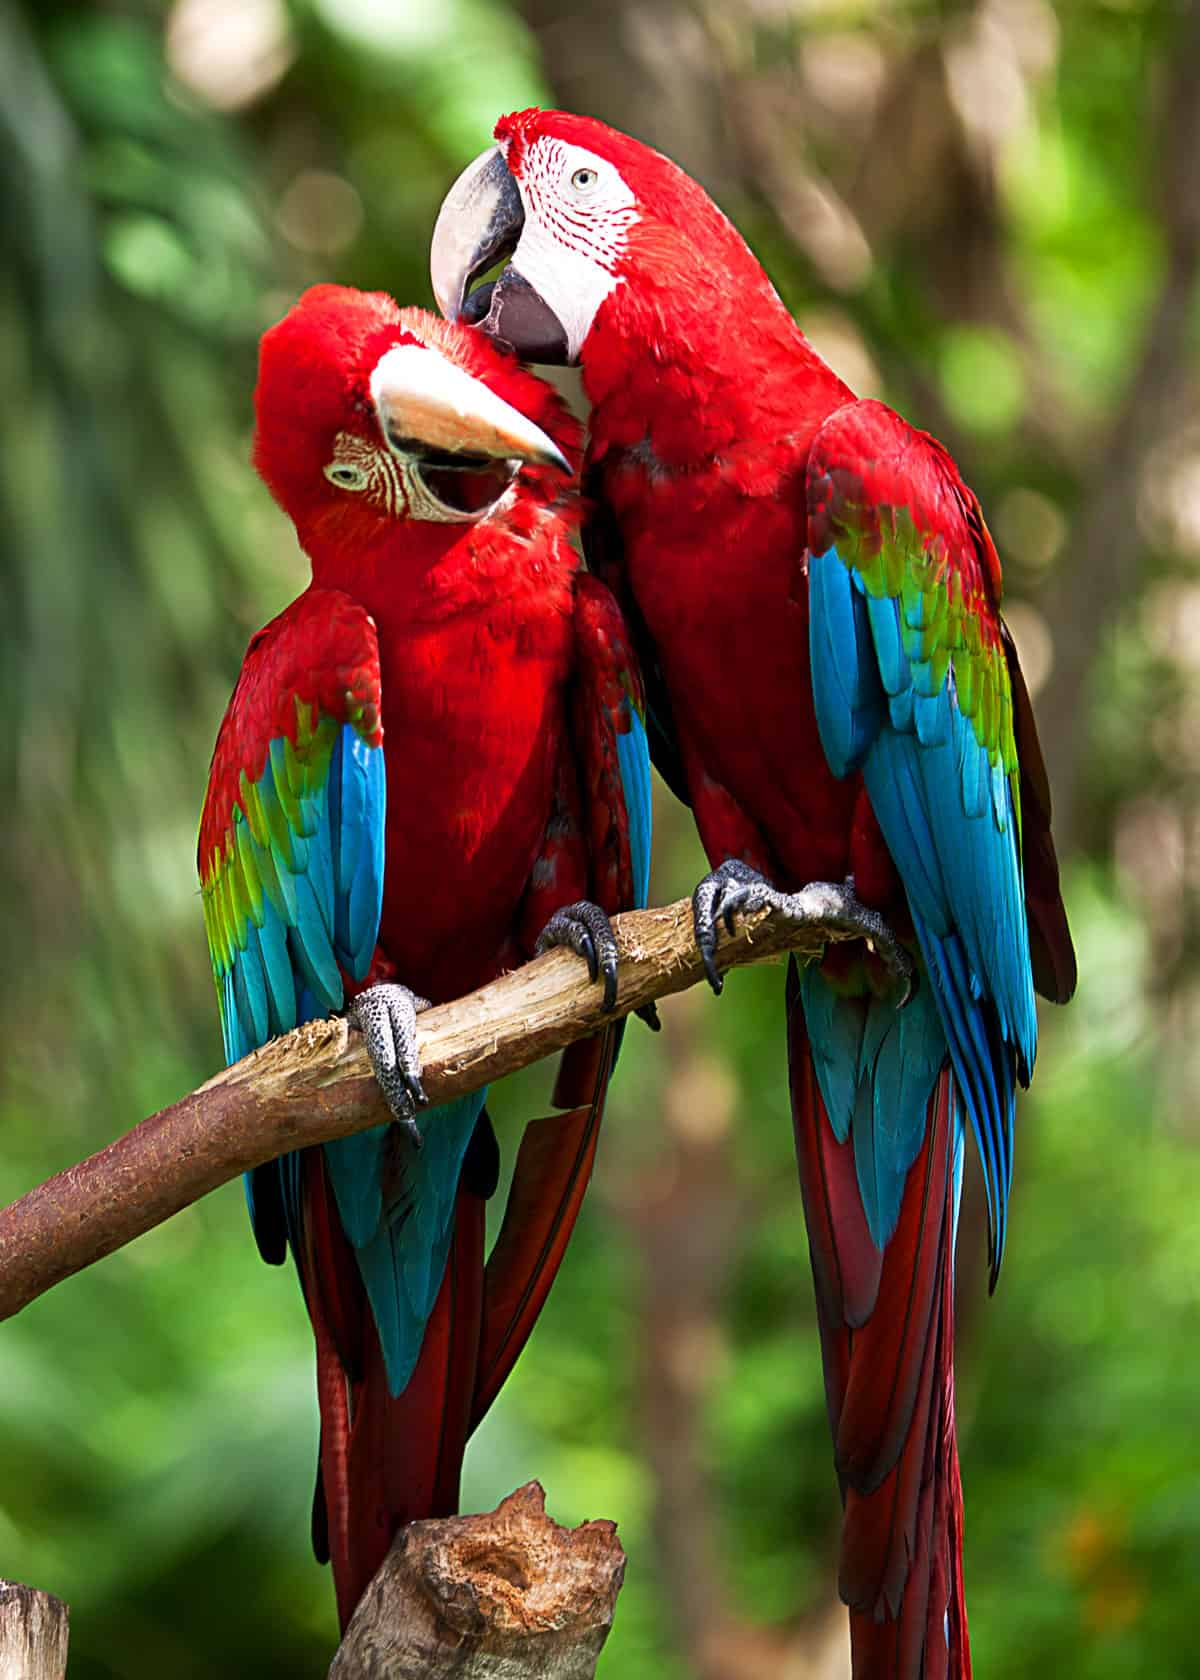 Do scarlet macaws mate for life?